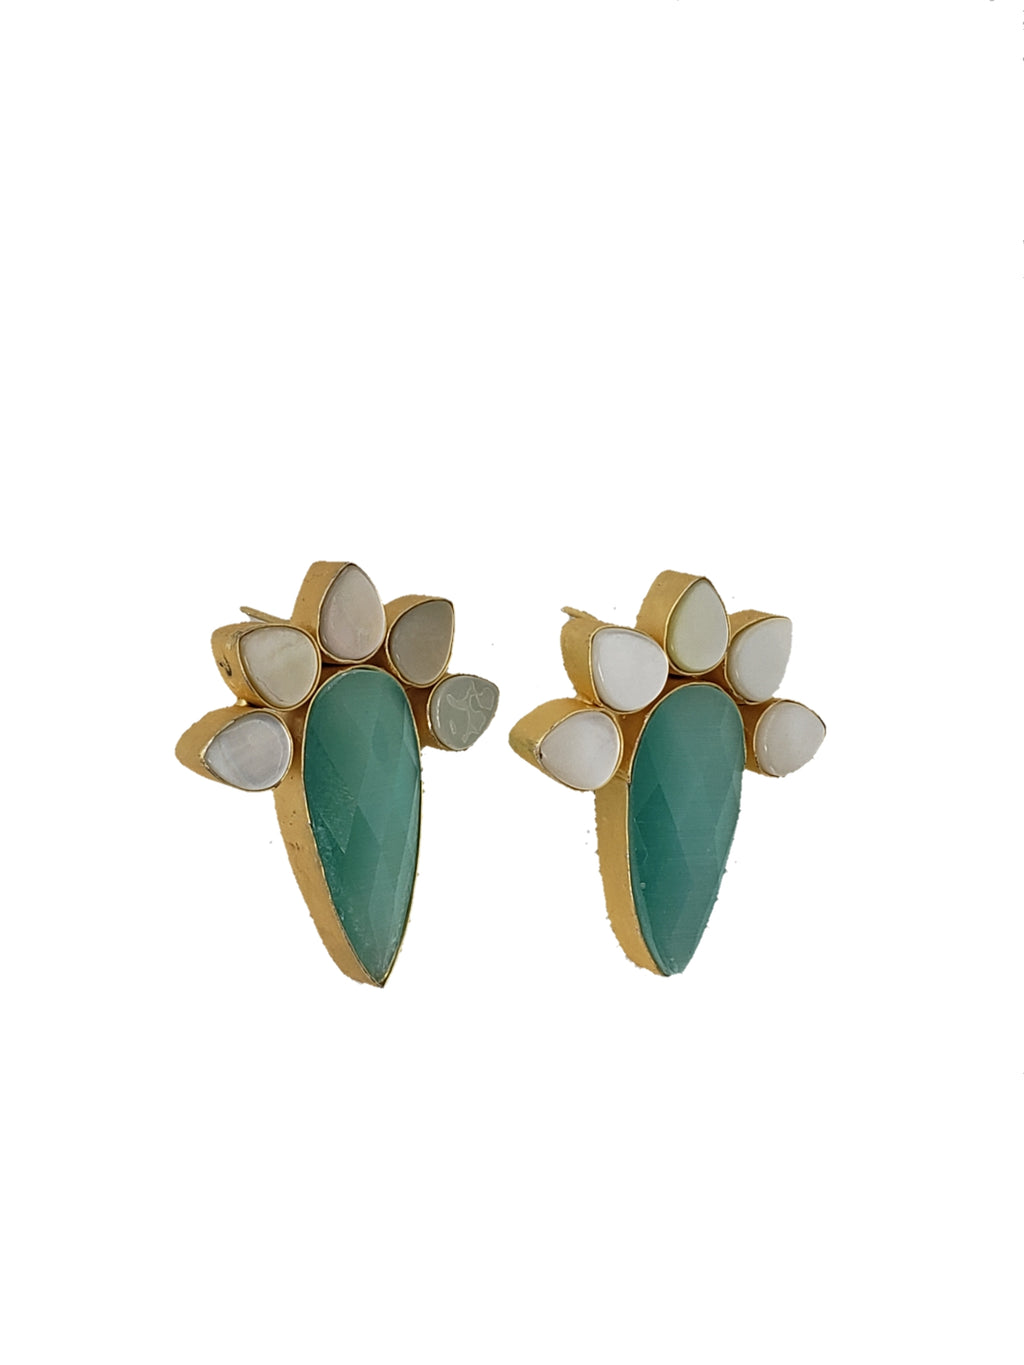 Turquoise Glass Stone and Mother of Pearl Stud Earrings - The Bauble Shop